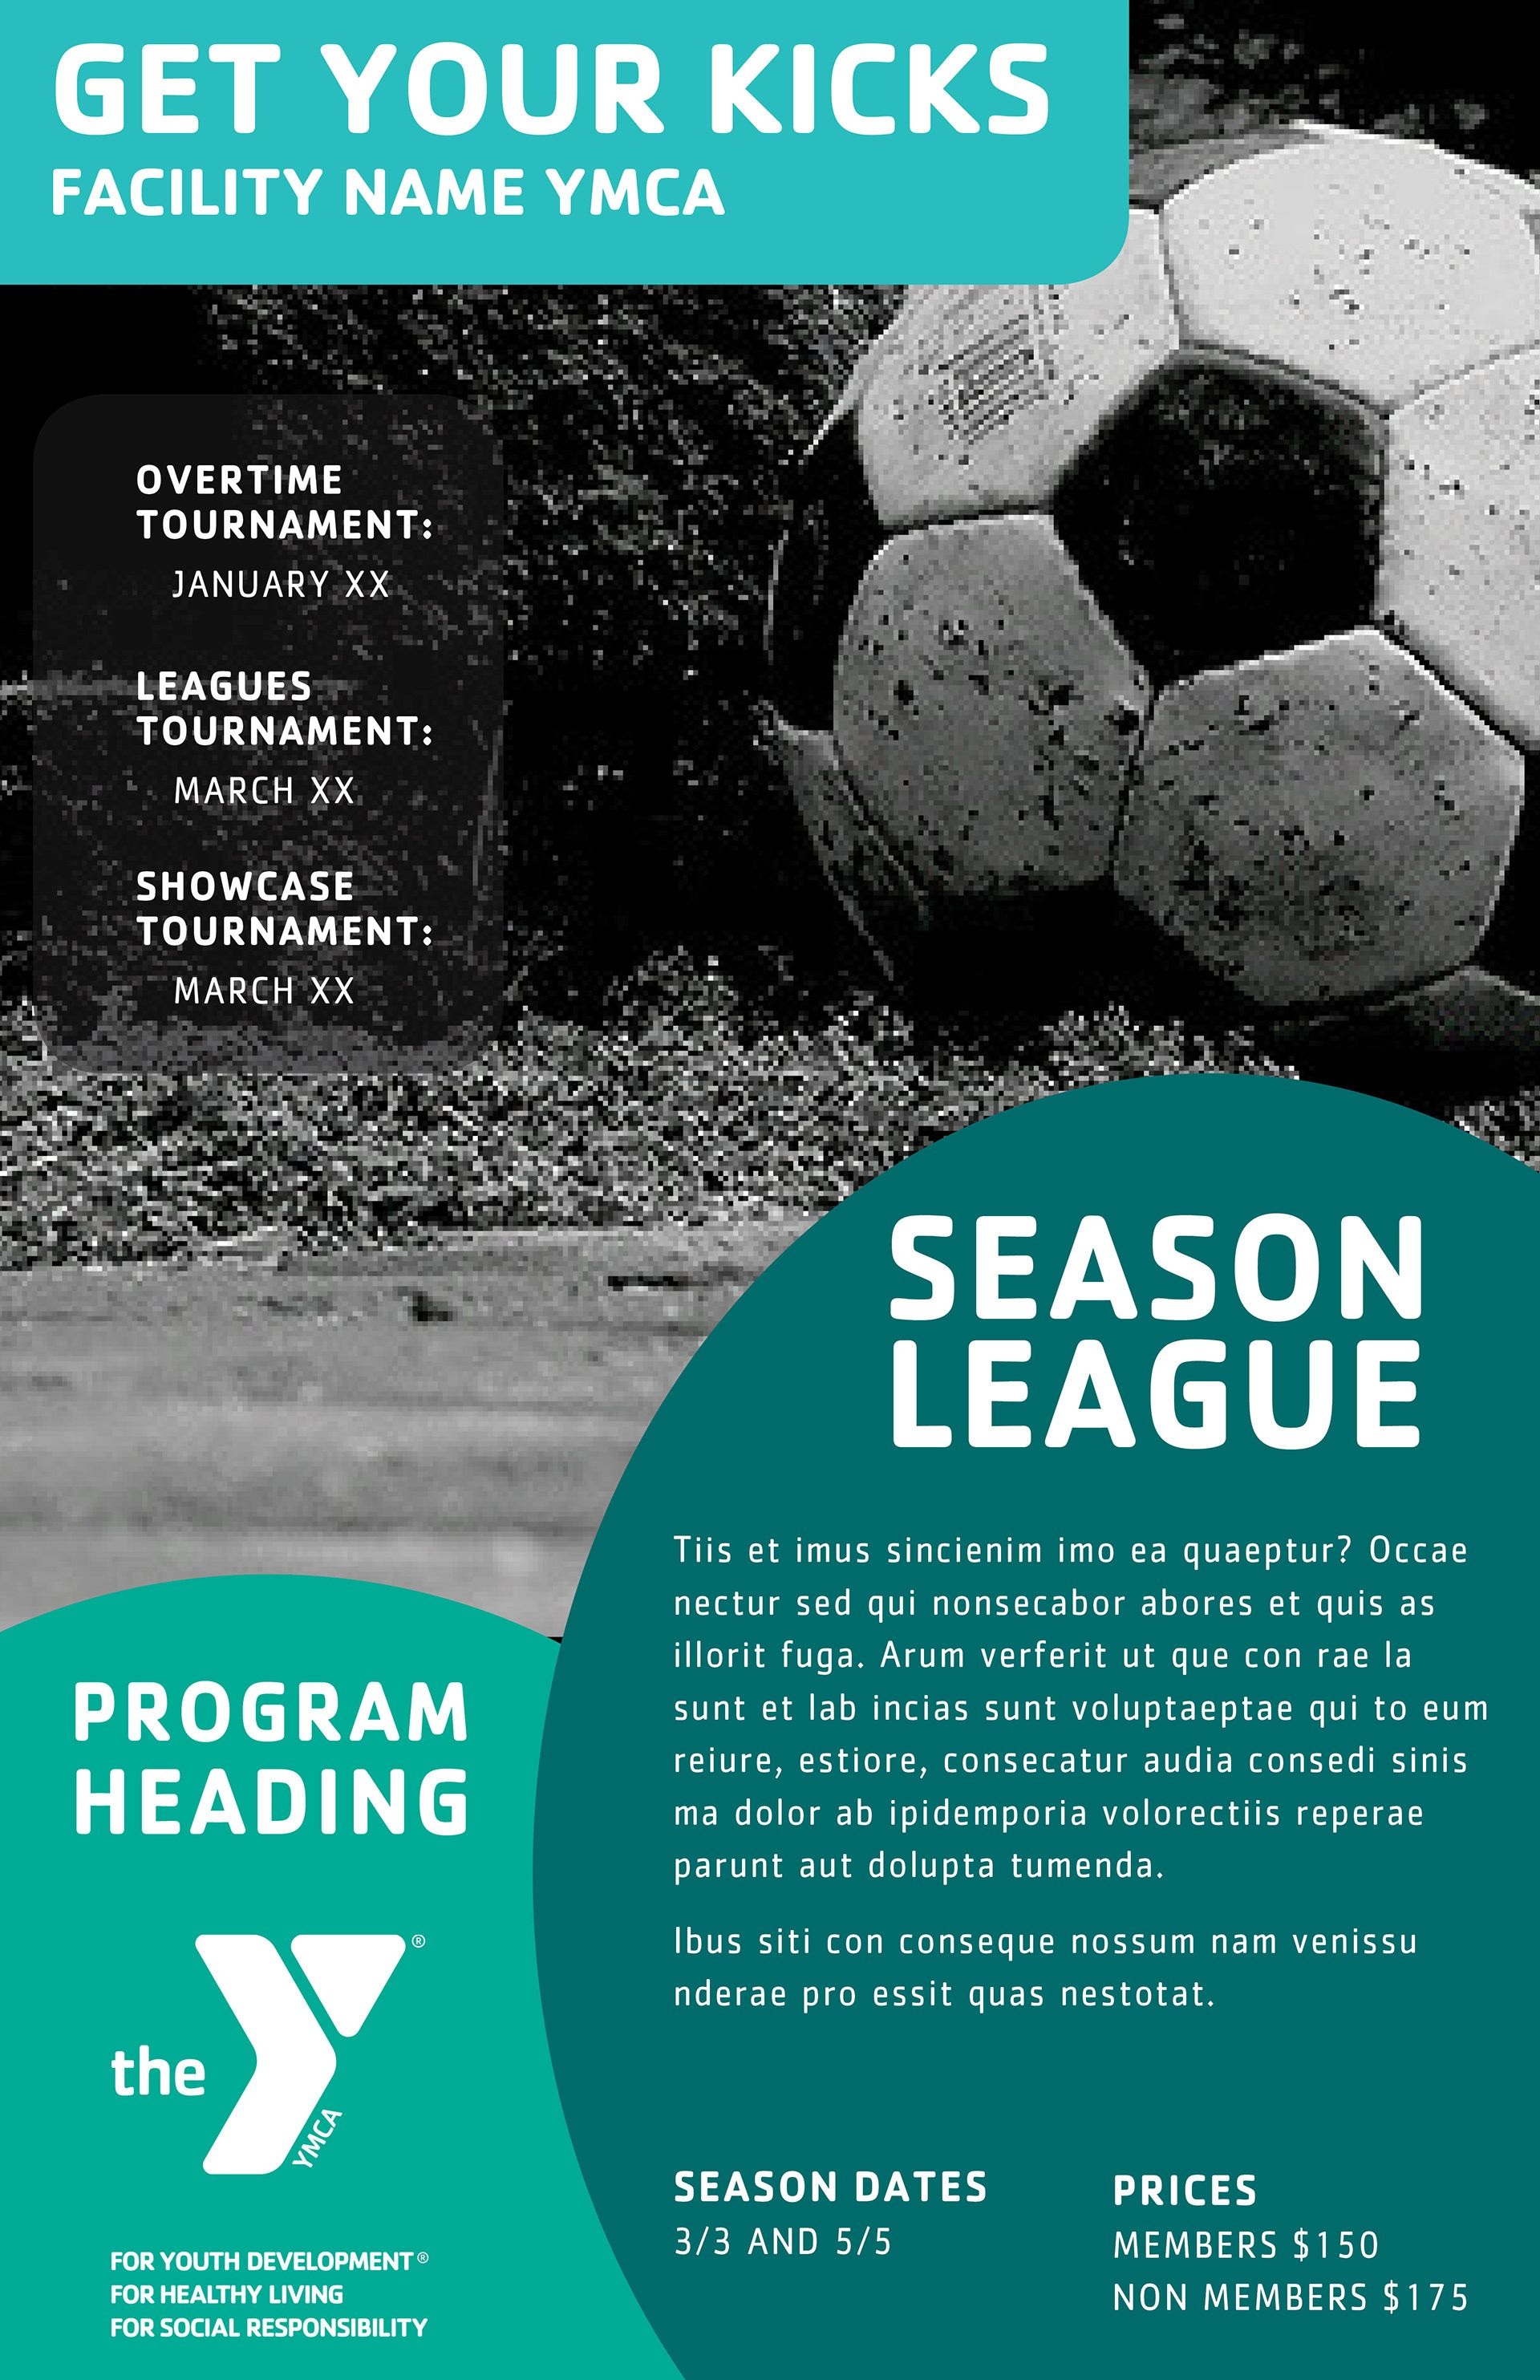 Layout Concept Ymcas Offer A Wide Range Of Programs Soccer Ymca Healthyliving Fitnessfun Healthandwellness Marketing Poster Ymca Youth Programs